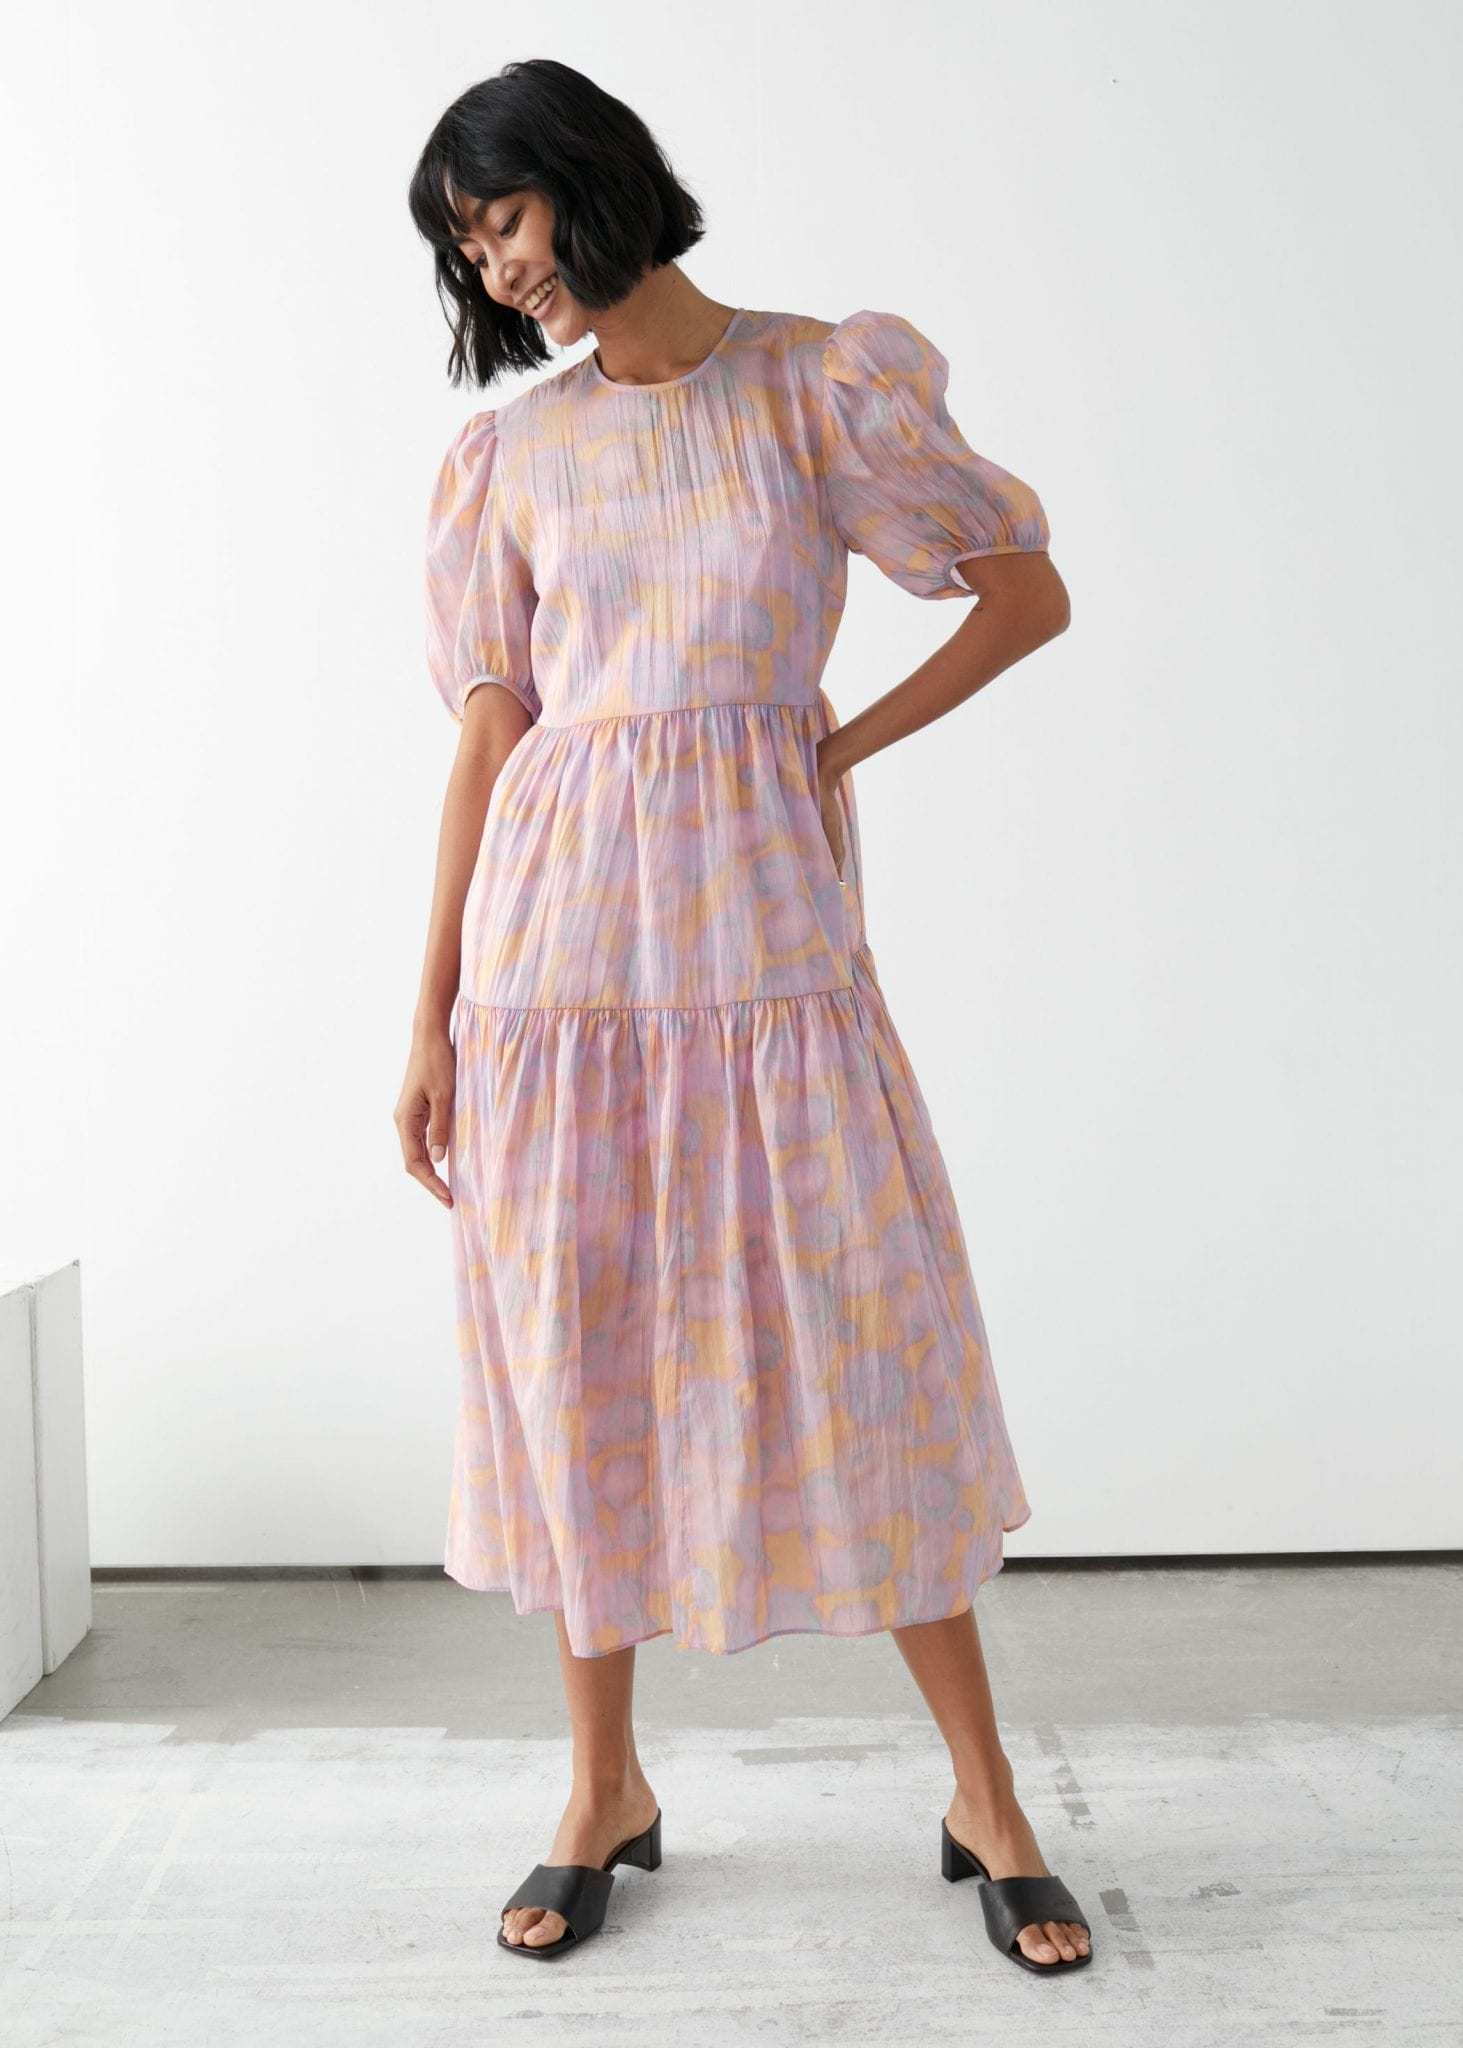 OTHER STORIES Voluminous Puff Sleeve Midi Dress